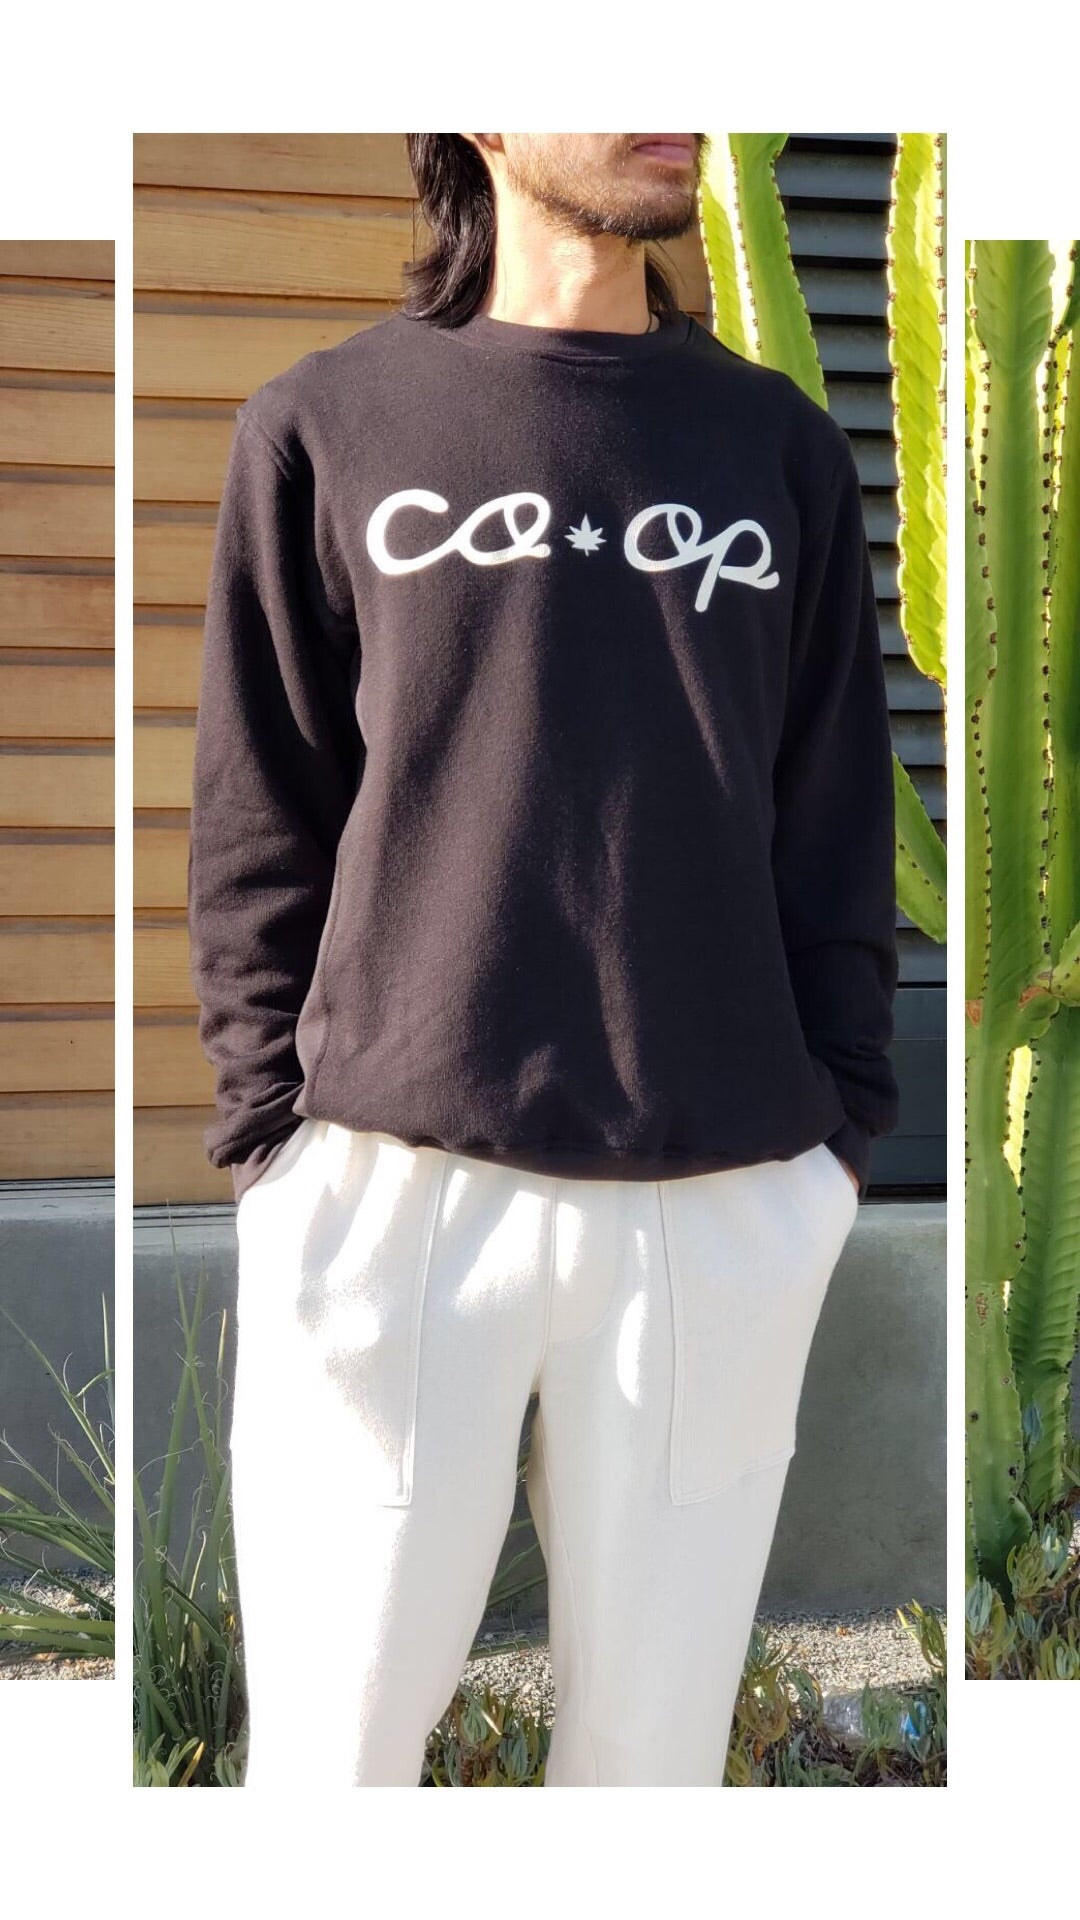 COOP All Star Hemp Black Sweater  2.0